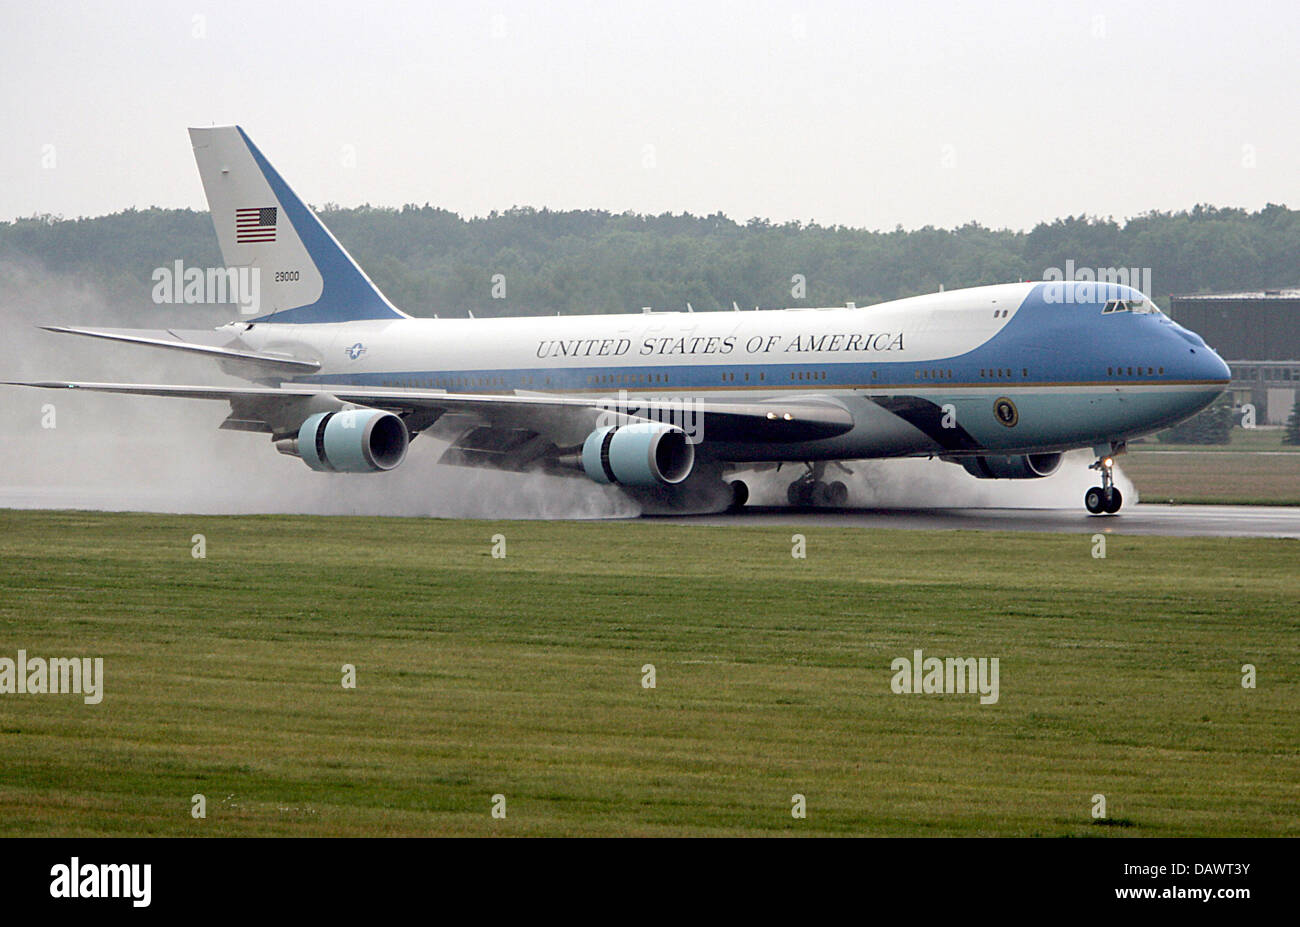 The Boeing 747 'Air Force One' of US President George W. Bush arrives to the G8 Summit Heiligendamm at the - Stock Image